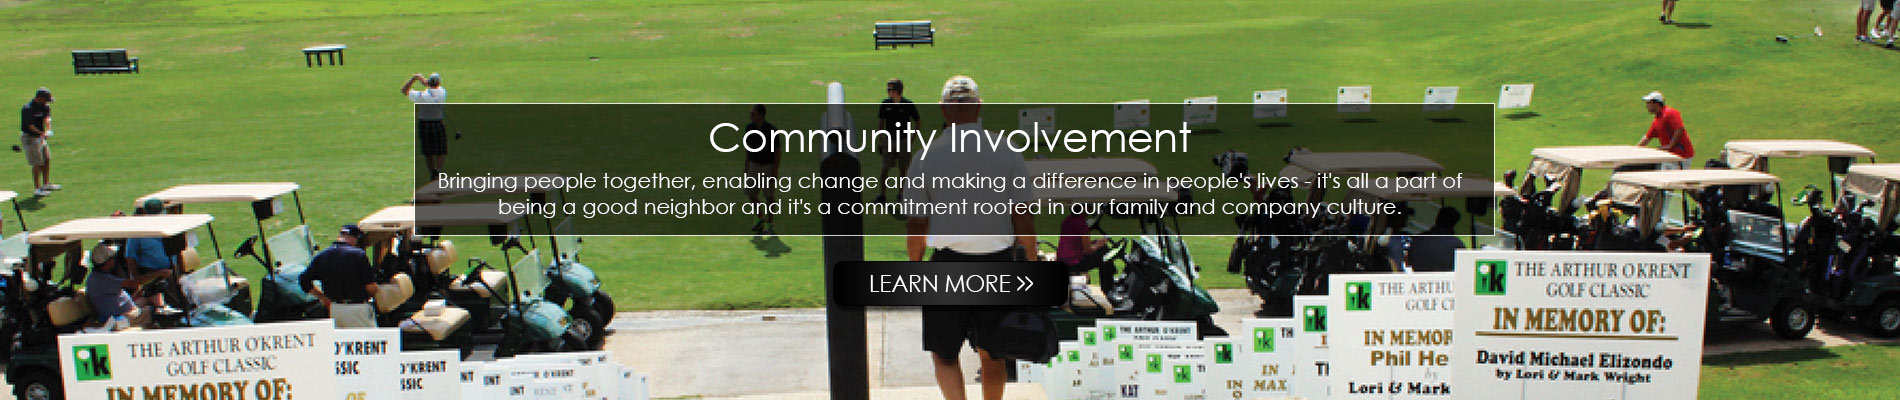 Community Involvement | Bringing people together, enabling change and making a difference in people's lives - it's all a part of being a good neighbor and it's a commitment rooted in our family and company culture.